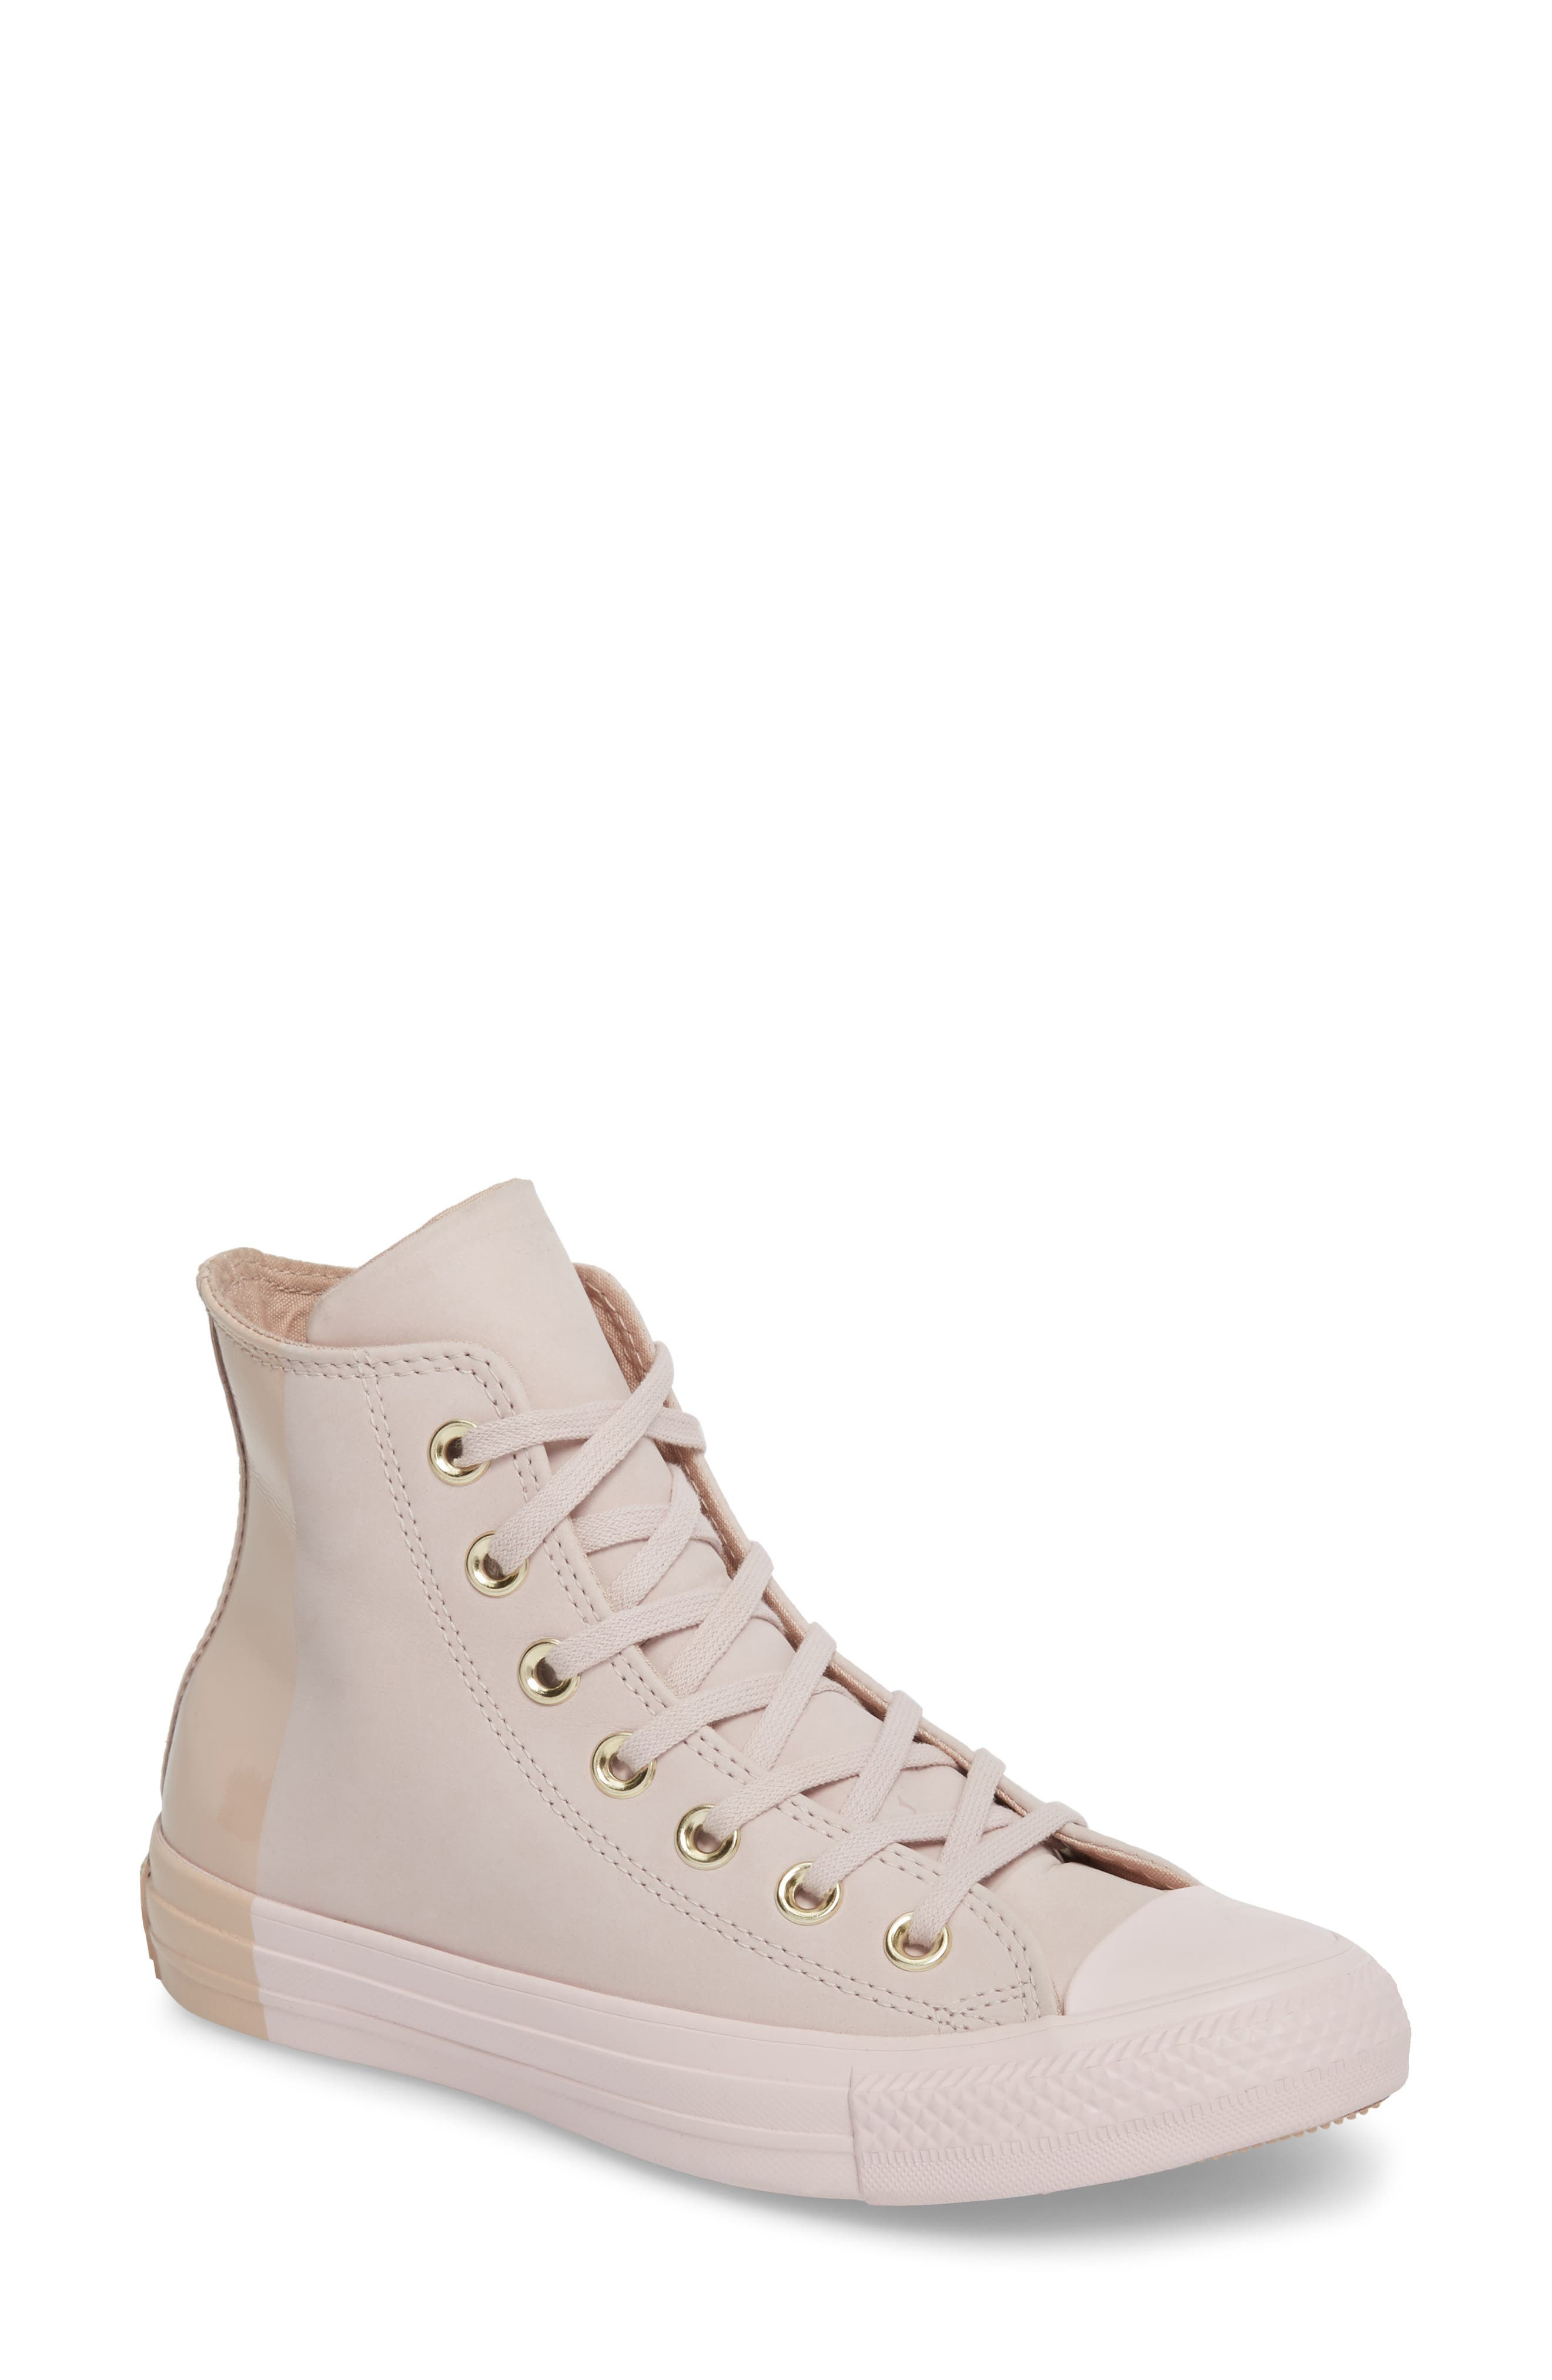 Chuck Taylor<sup>®</sup> All Star<sup>®</sup> Blocked High Top Sneaker,                         Main,                         color, 653